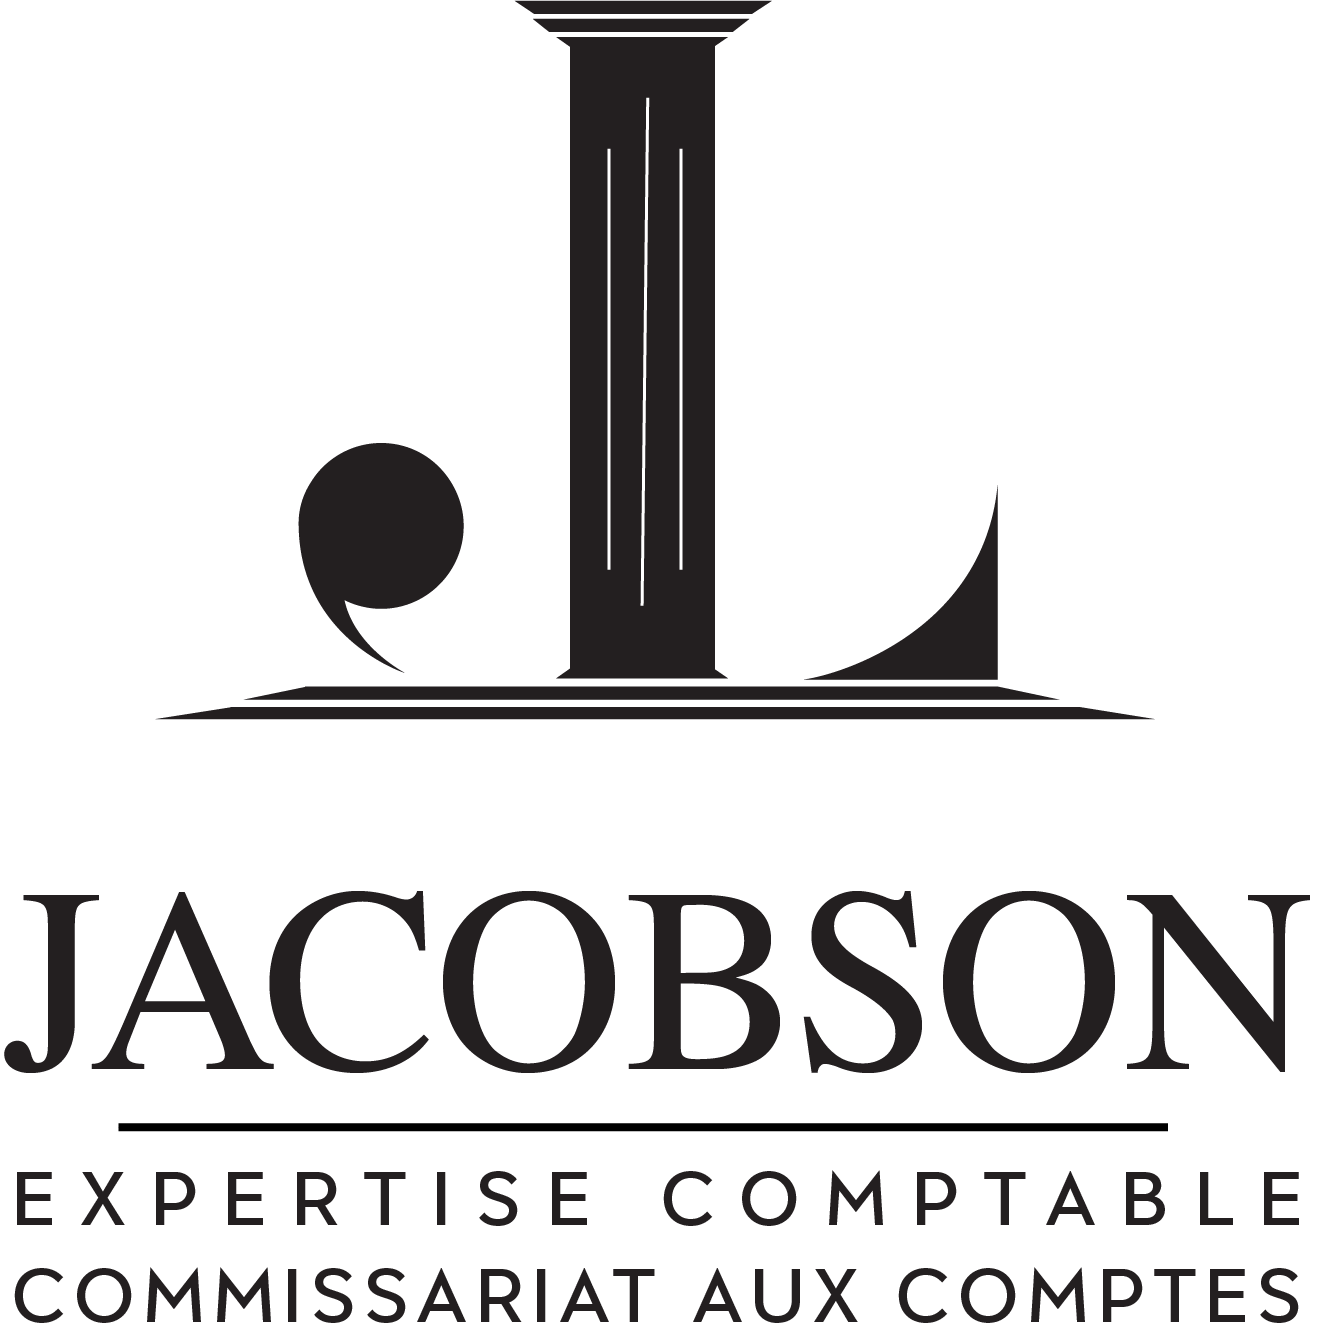 Jacobson Expertise